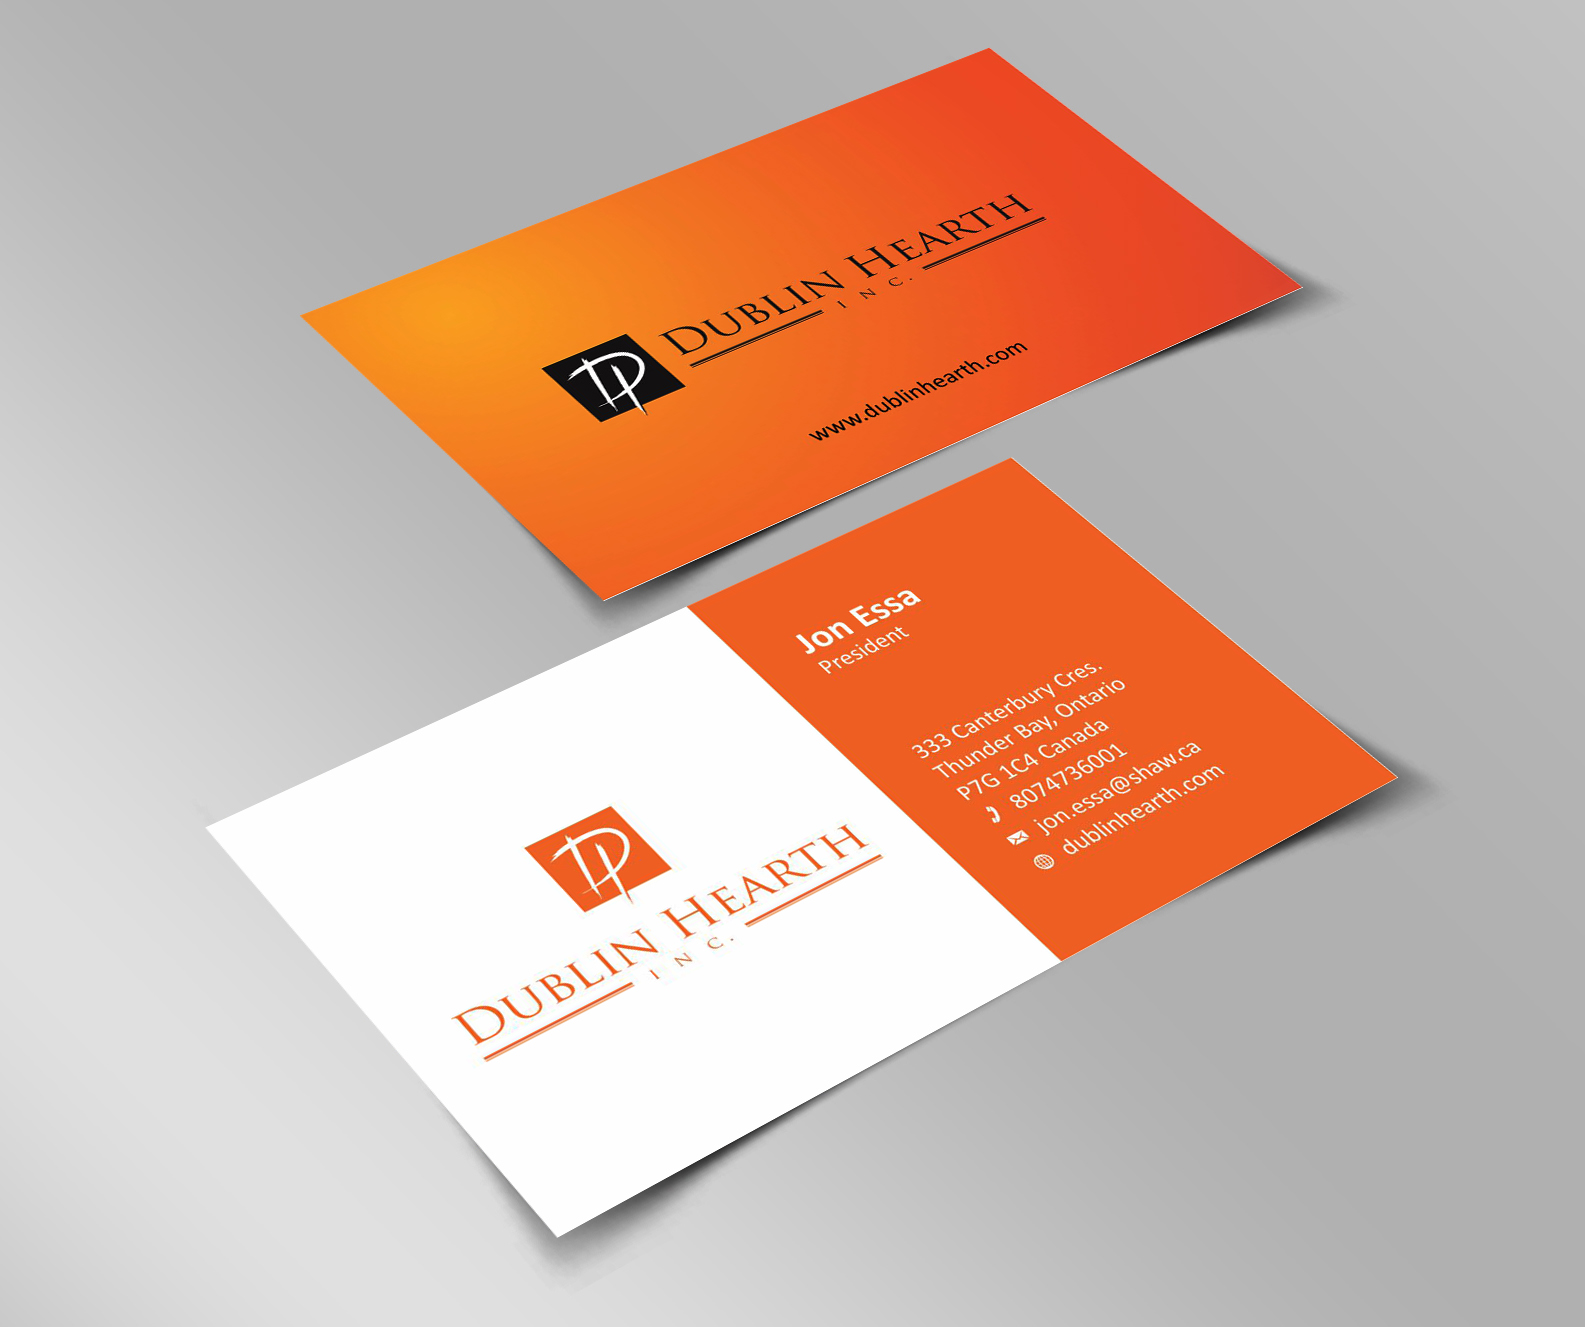 Small business consulting business card ideas resources for business